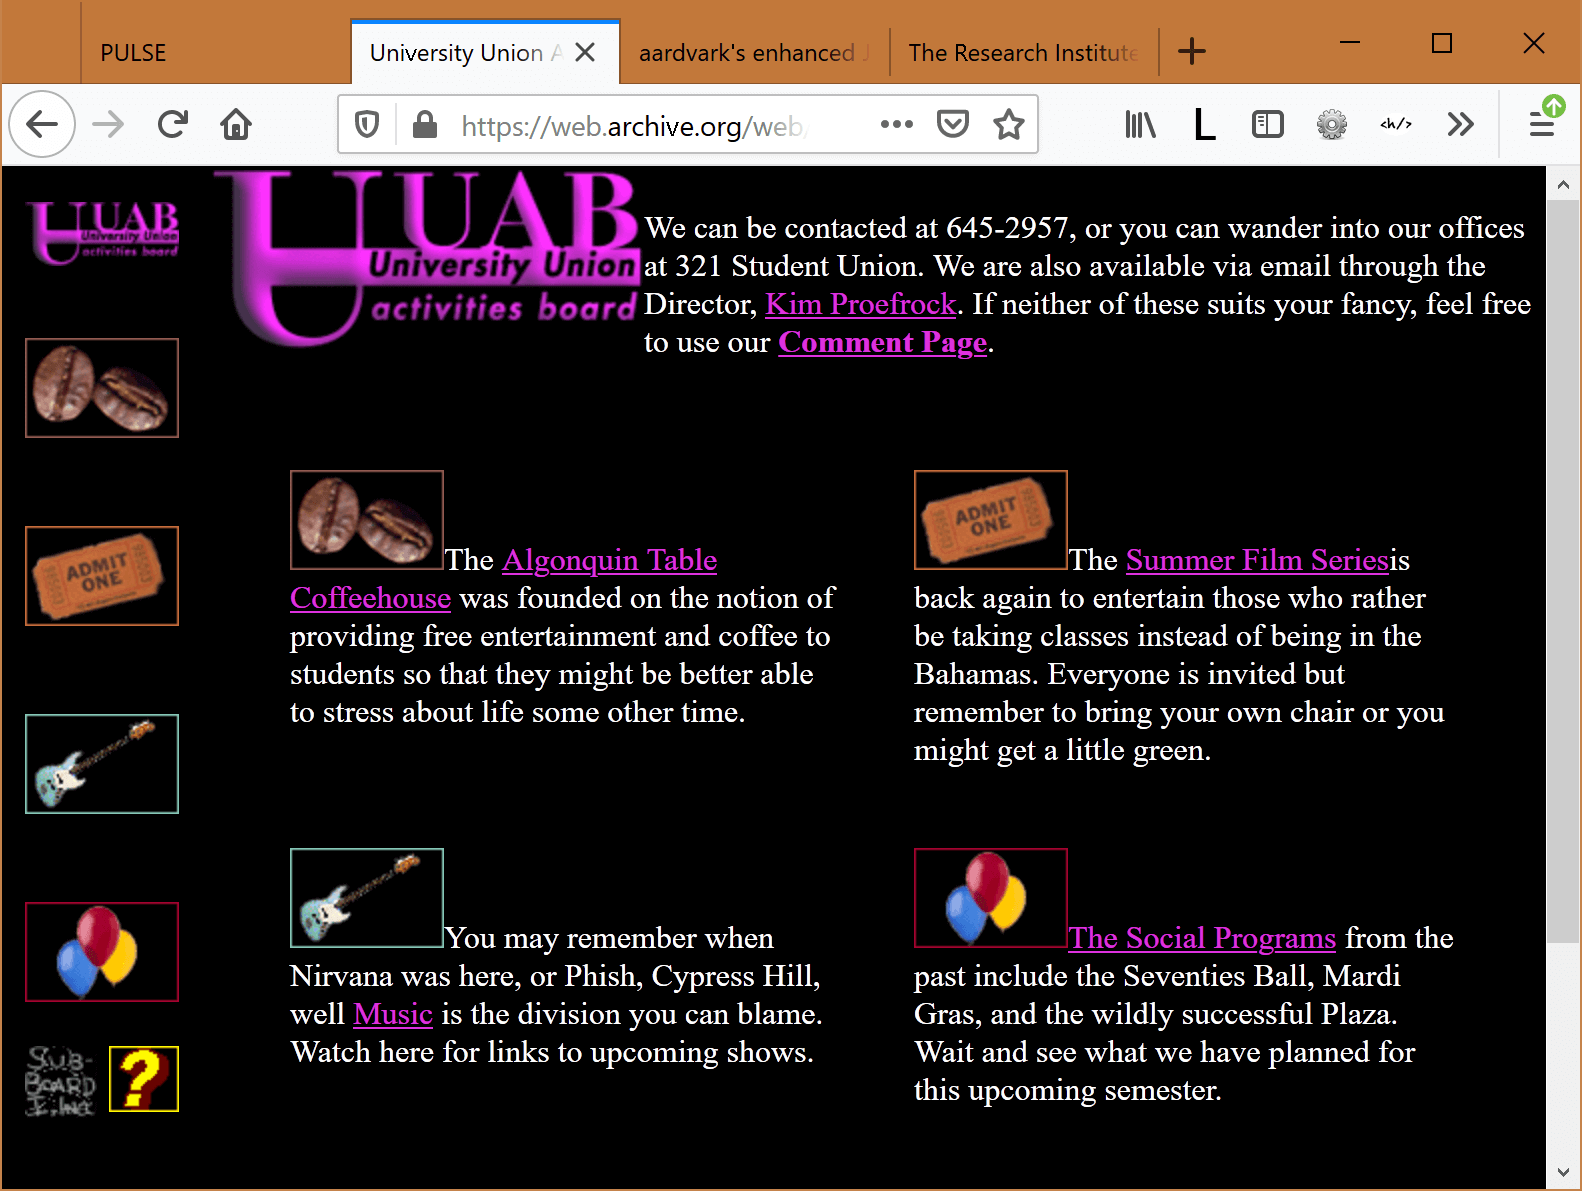 UUAB home page in a frameset with links to coffee house, films, concerts, and social events.